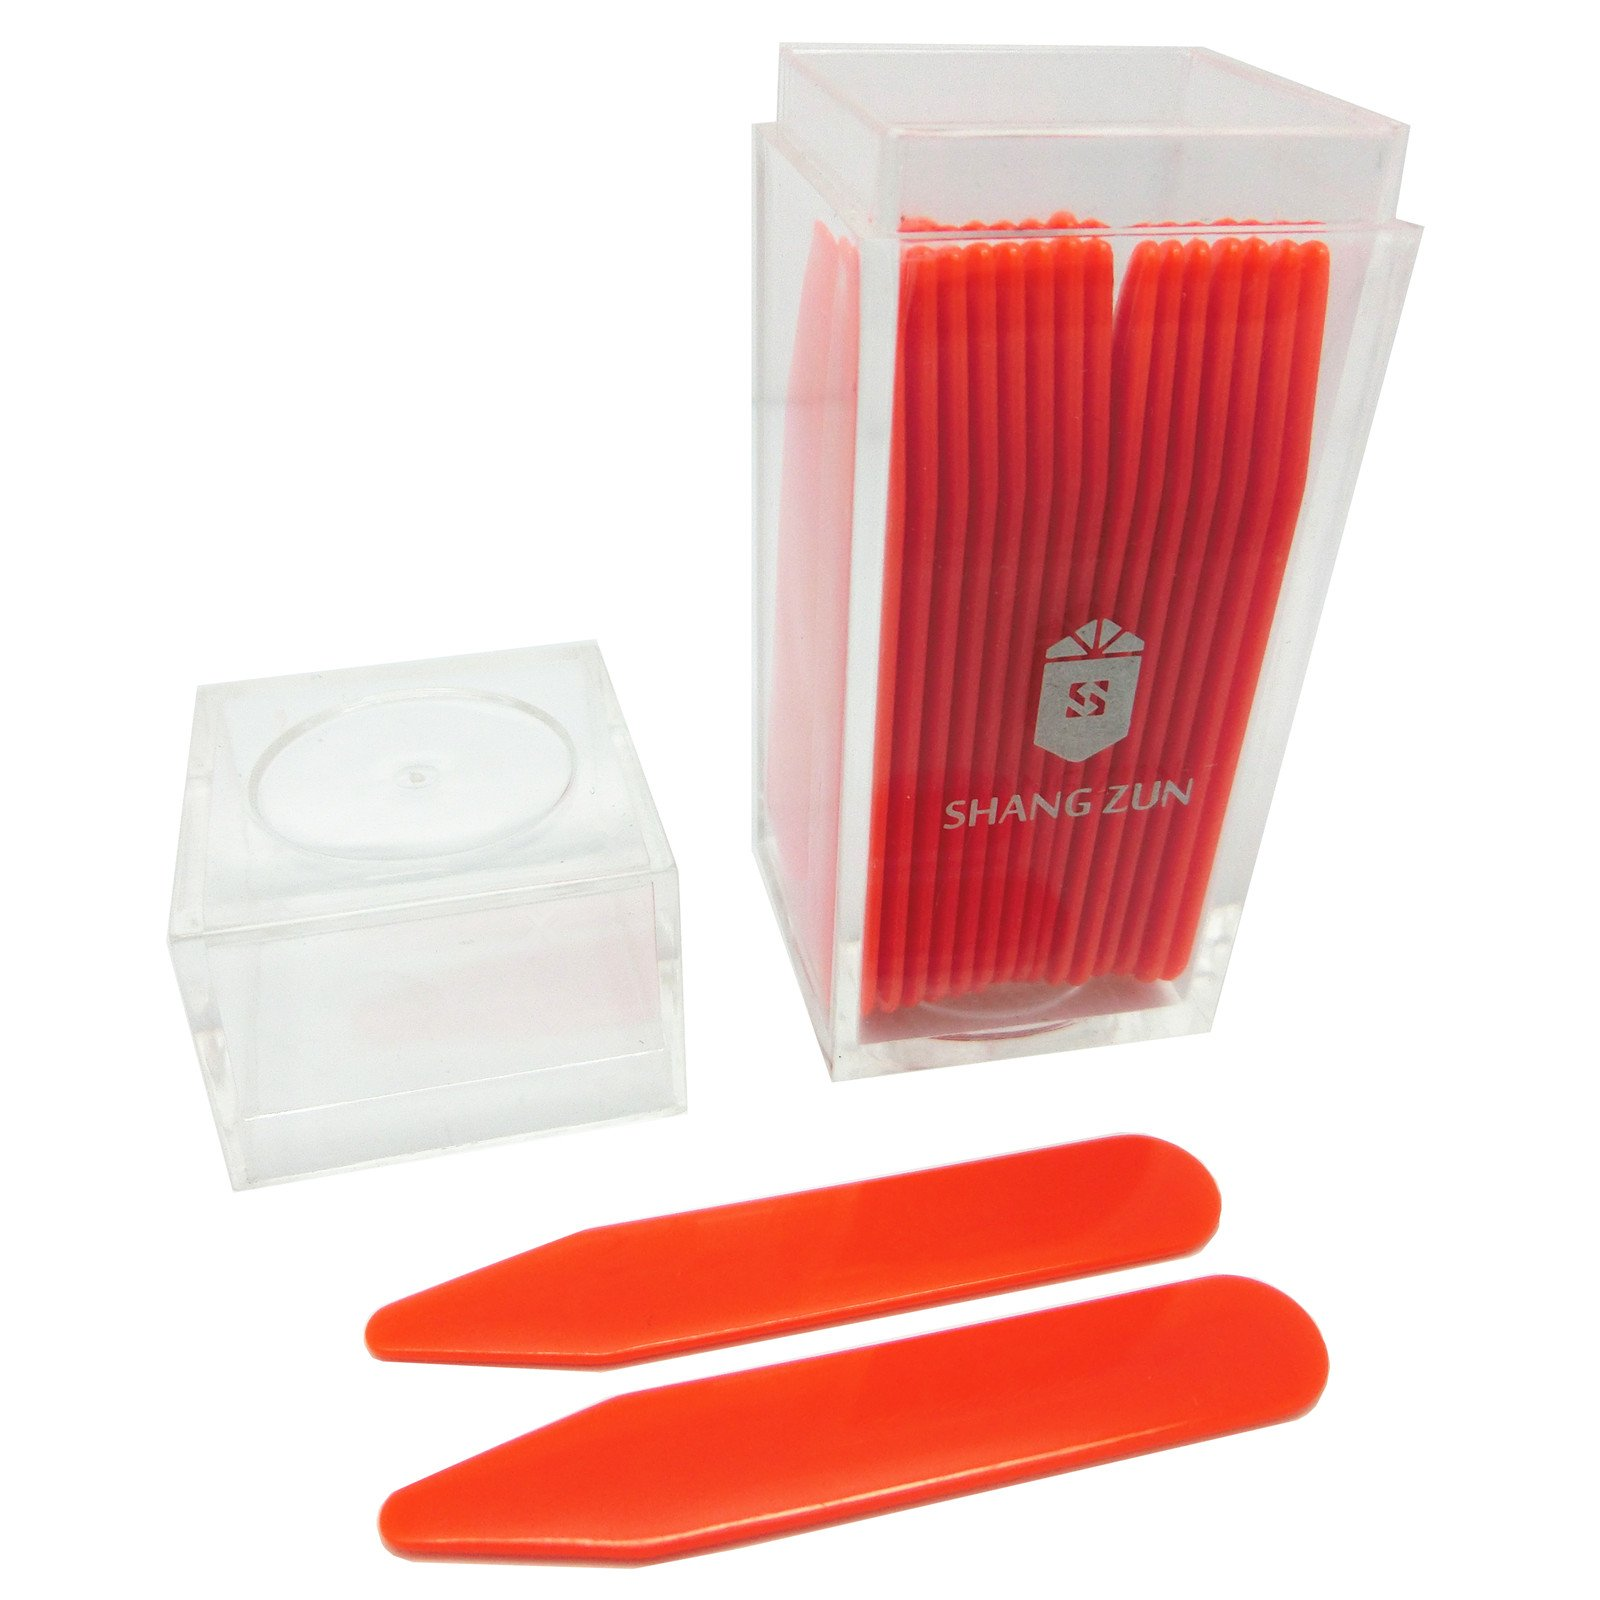 Shang Zun 30 Pcs Orange Plastic Collar Stays in Clear Box, 2.2''